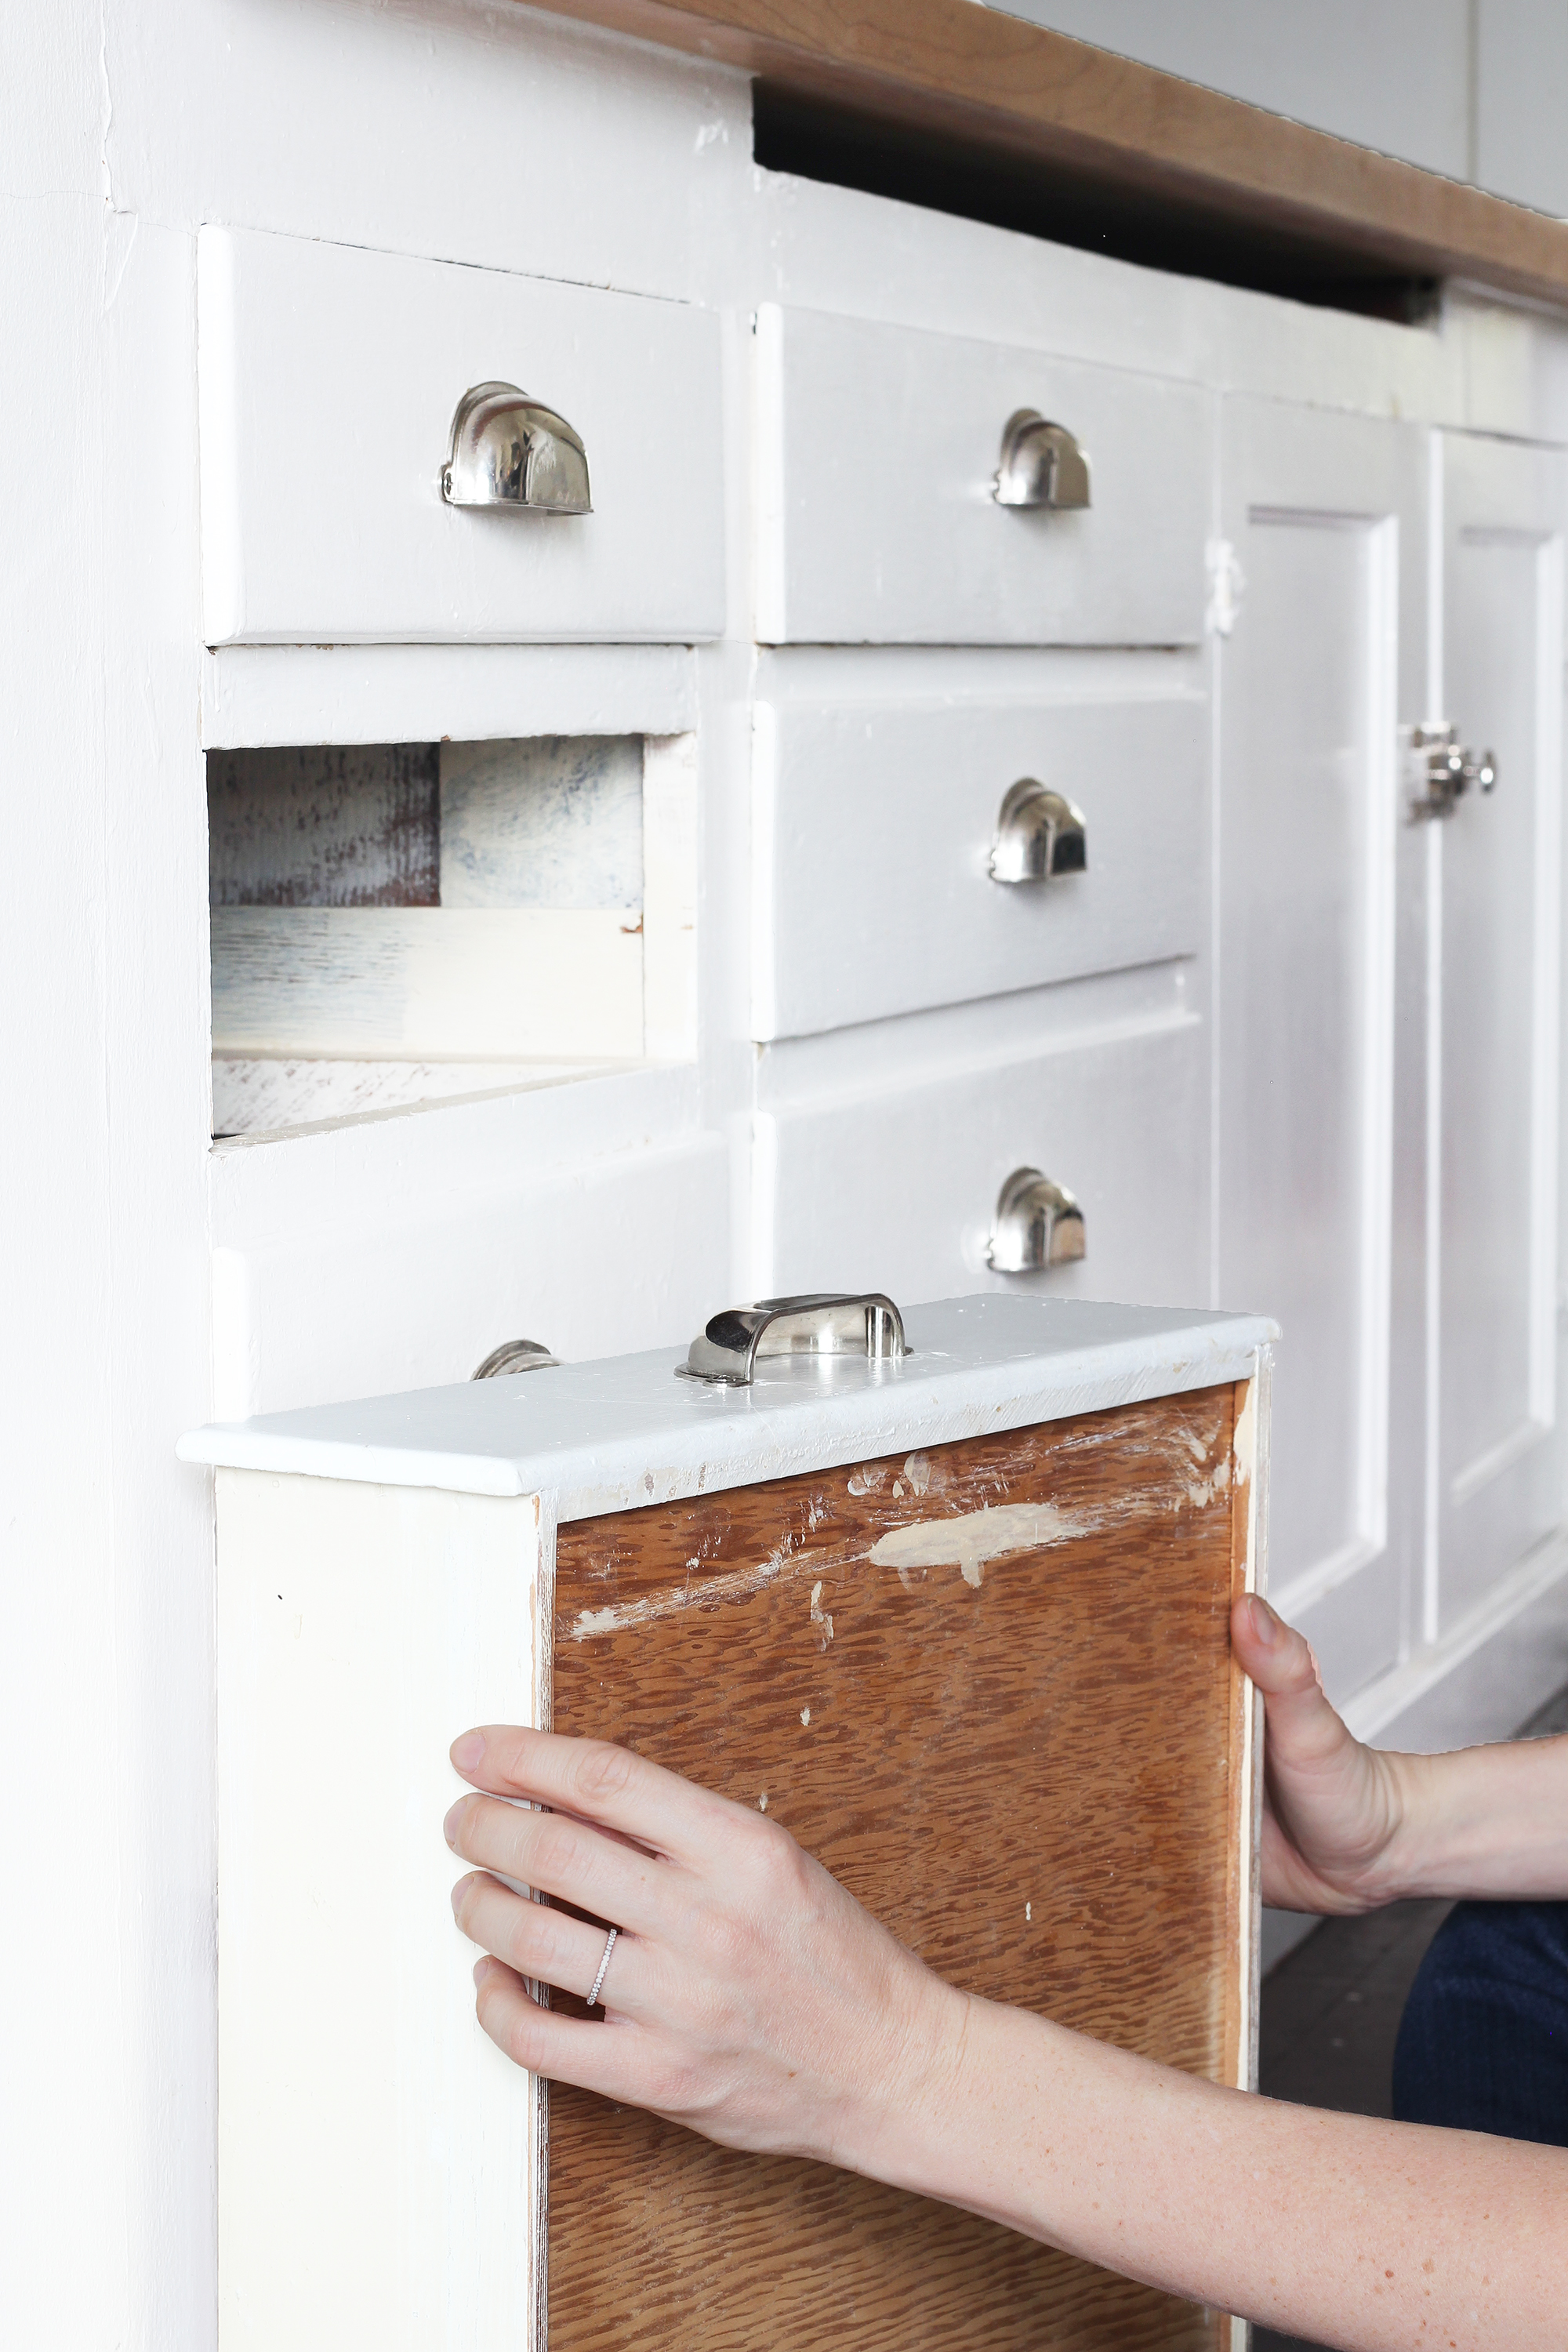 Diy How To Make Old Wood Drawers Slide Easier The Grit And Polish